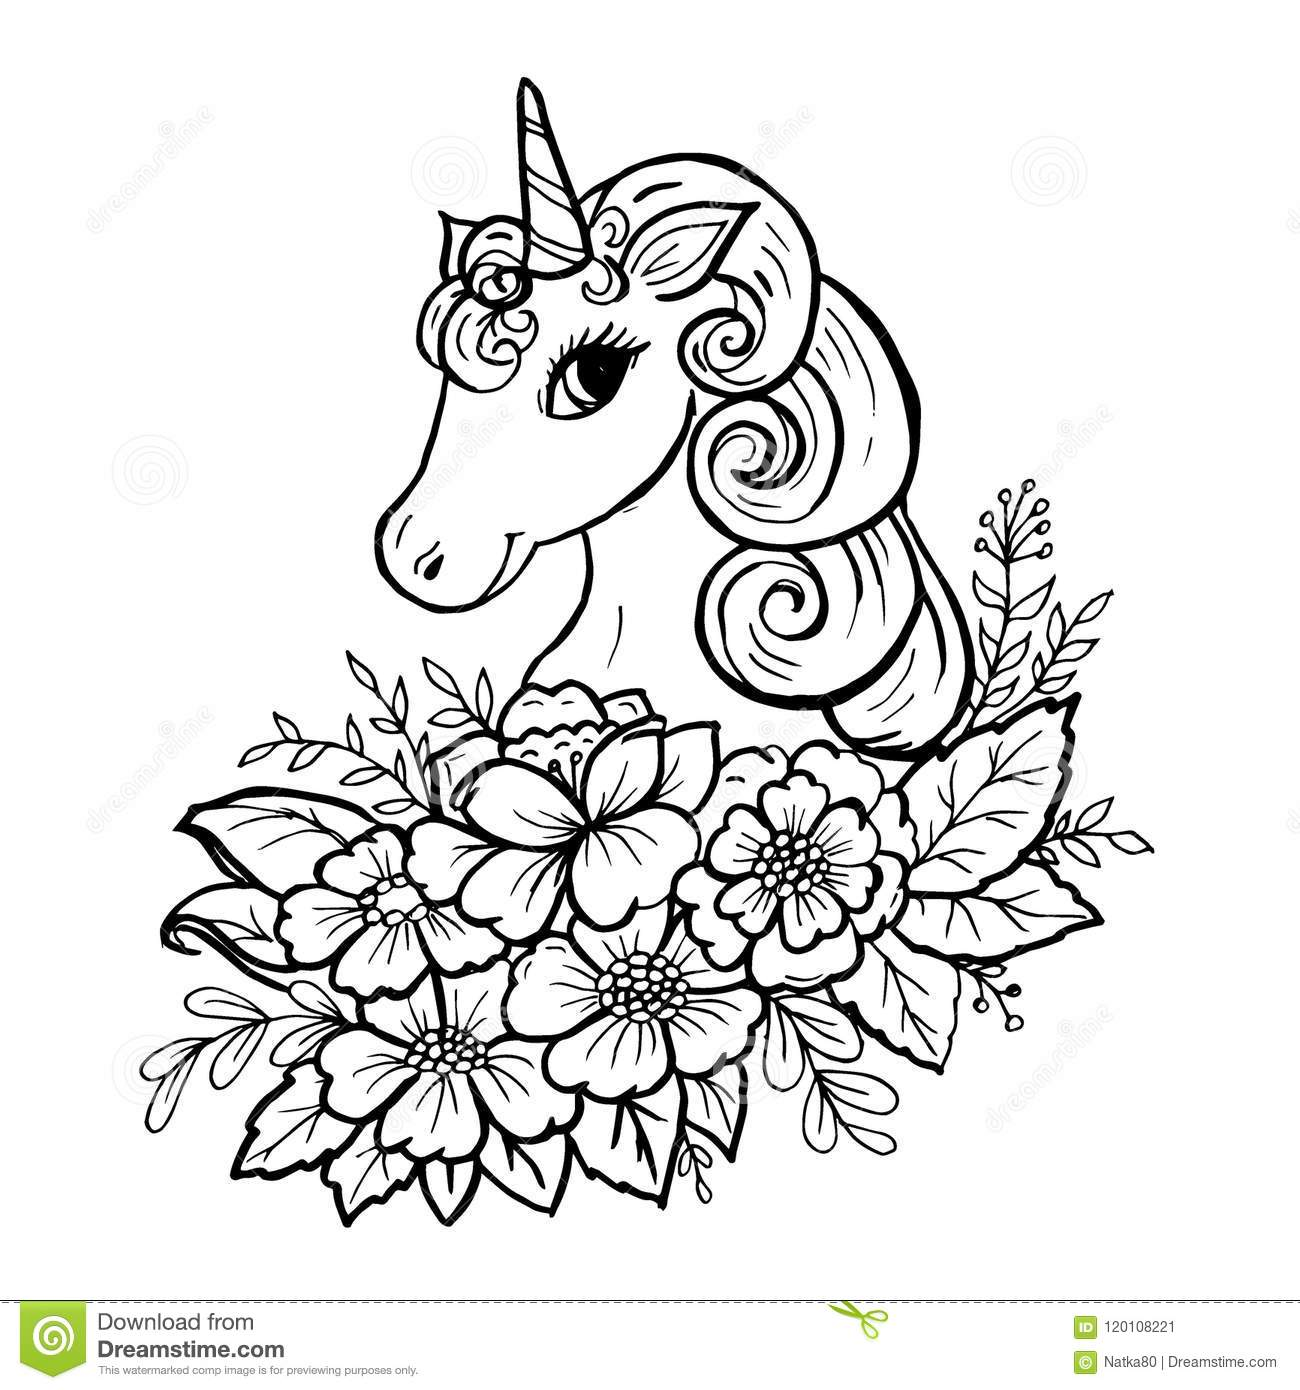 Doodle Cute Unicorn Head Stock Vector Illustration Of